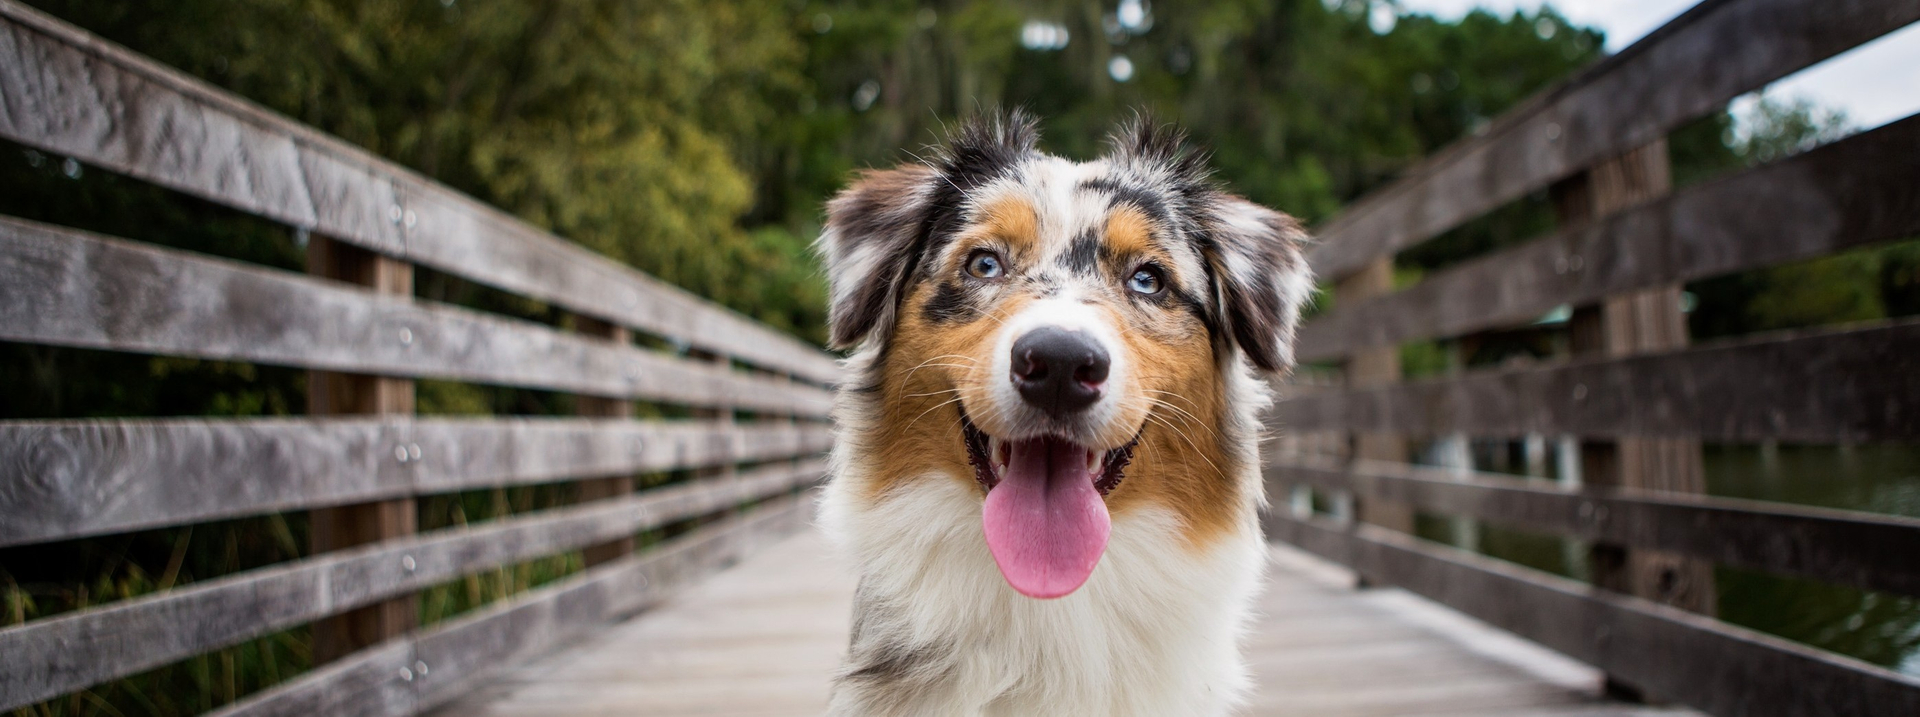 Breed history and appearance of the Australian Shepherd.